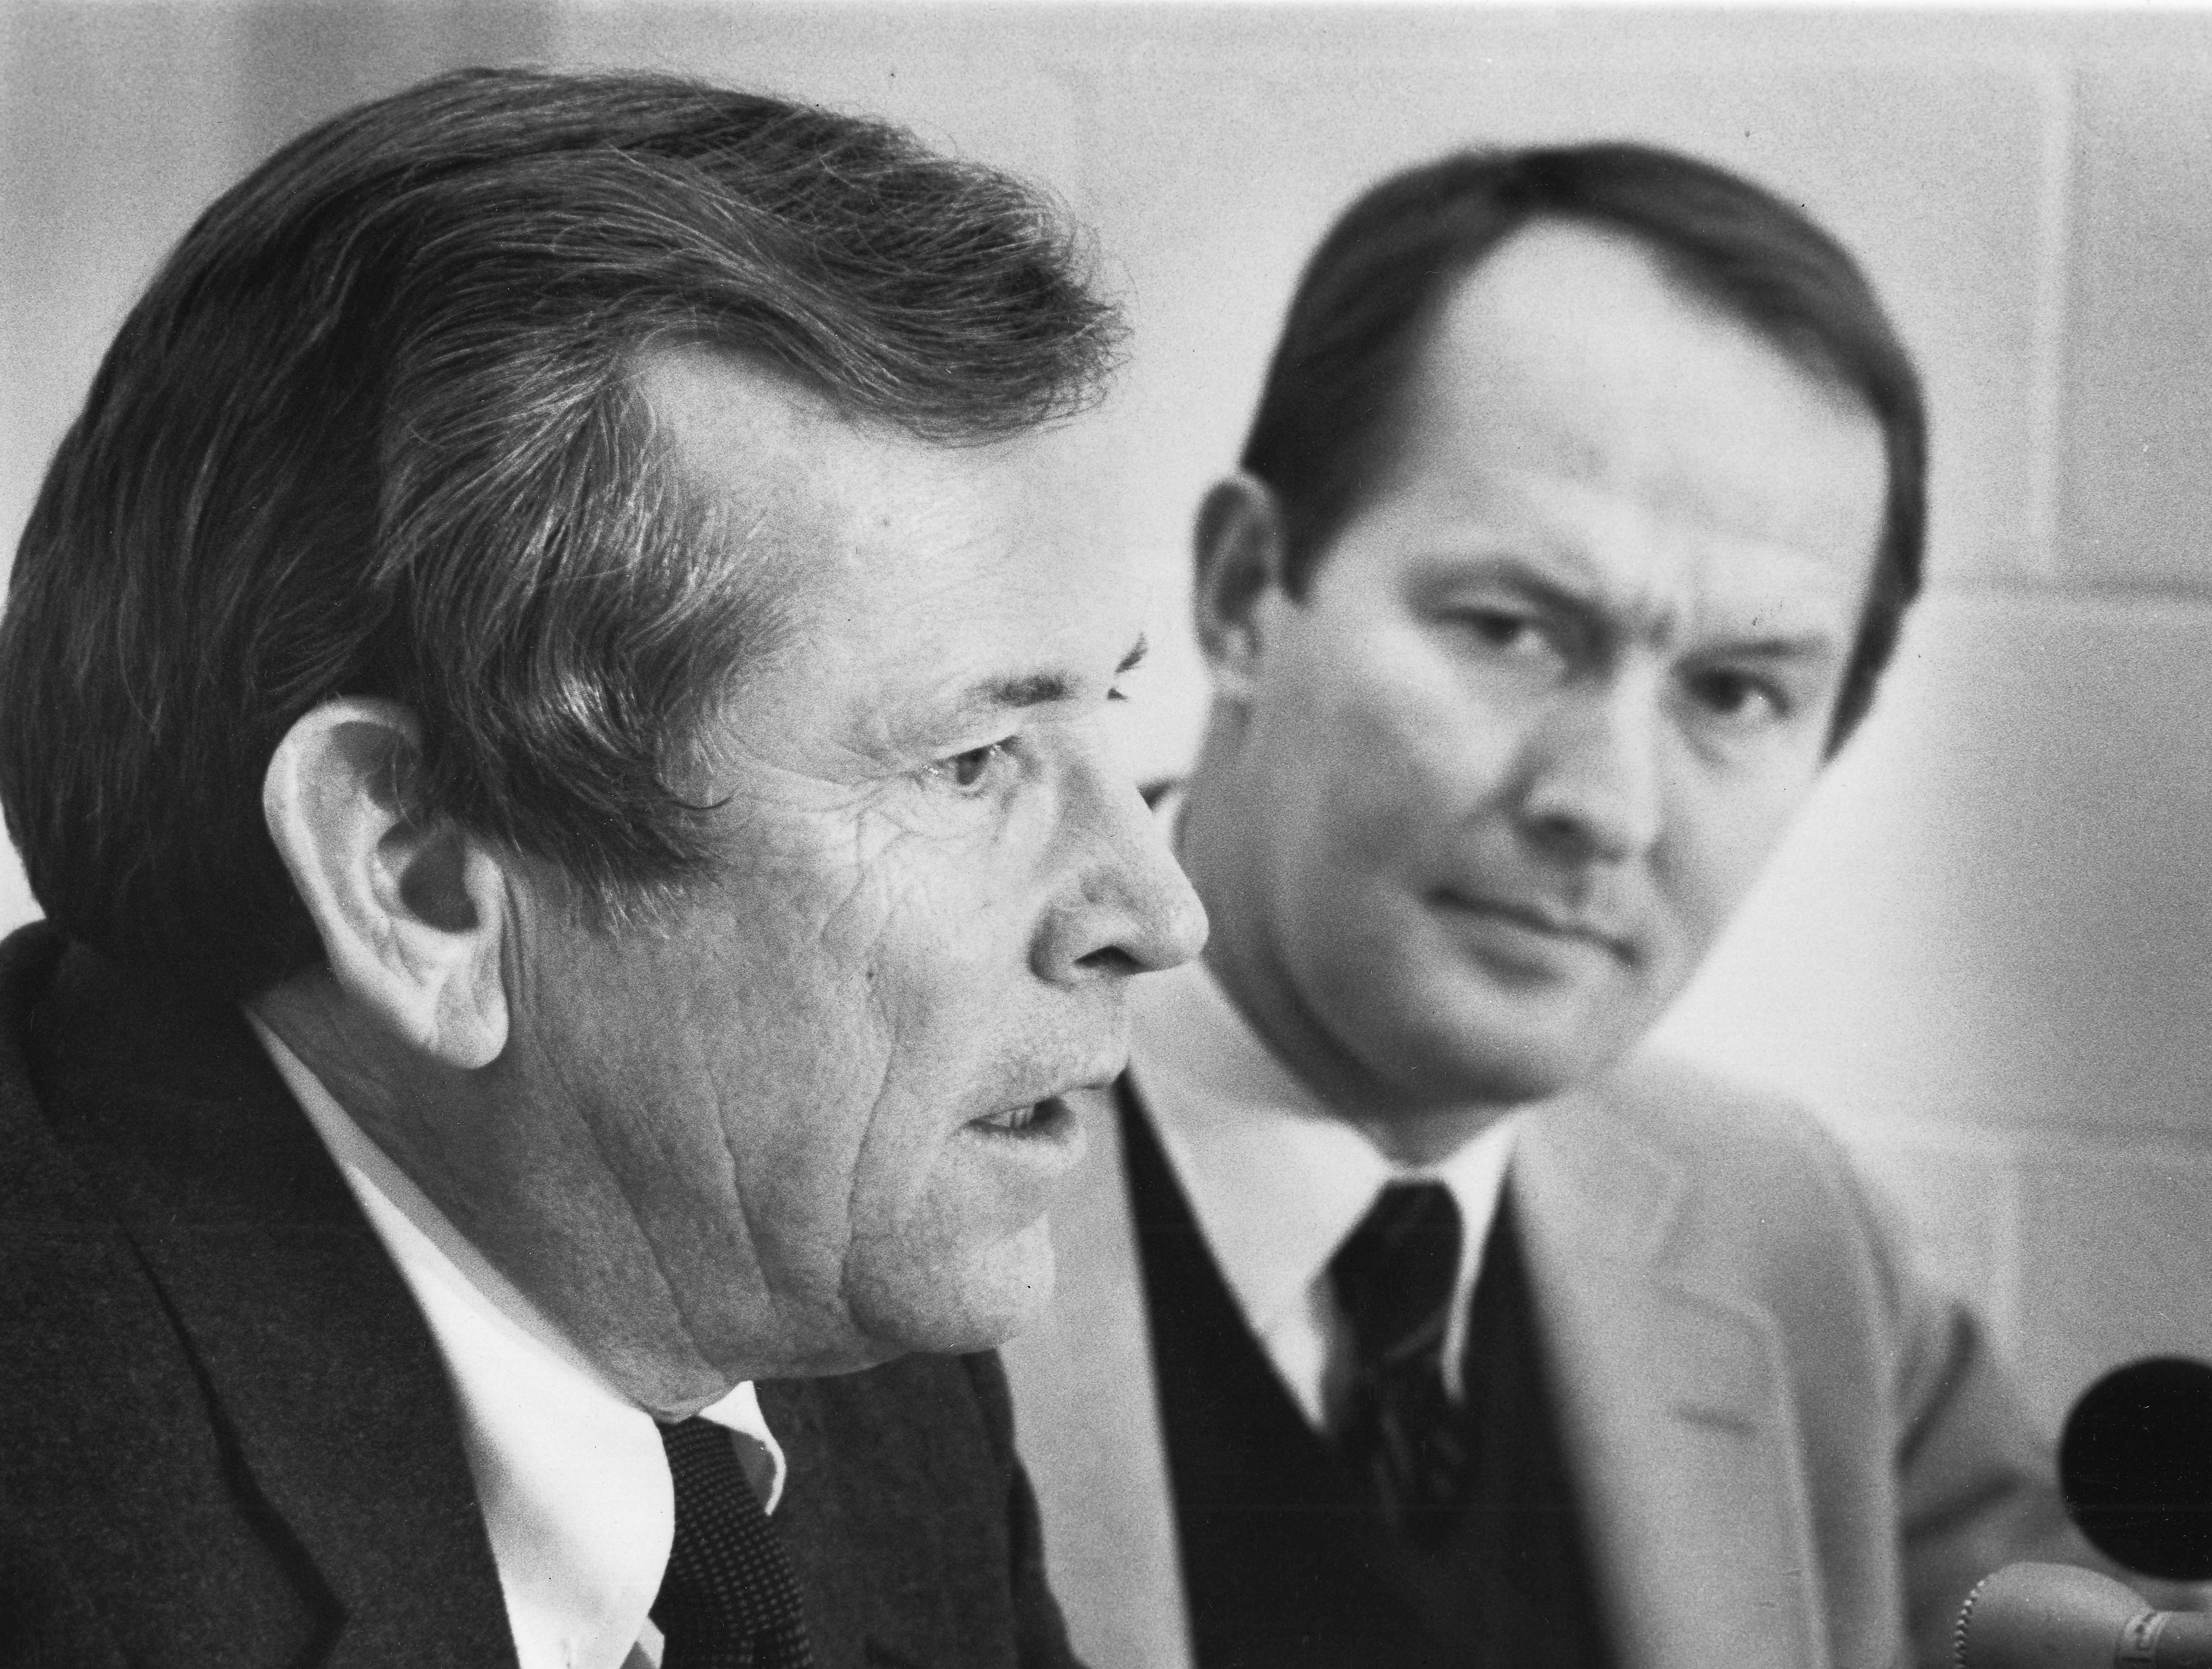 U.S. Sen. Howard H. Baker Jr., left, and Gov. Lamar Alexander meet the press during the annual Lincoln Day Dinner on Feb. 11, 1982, at the Civic Coliseum.